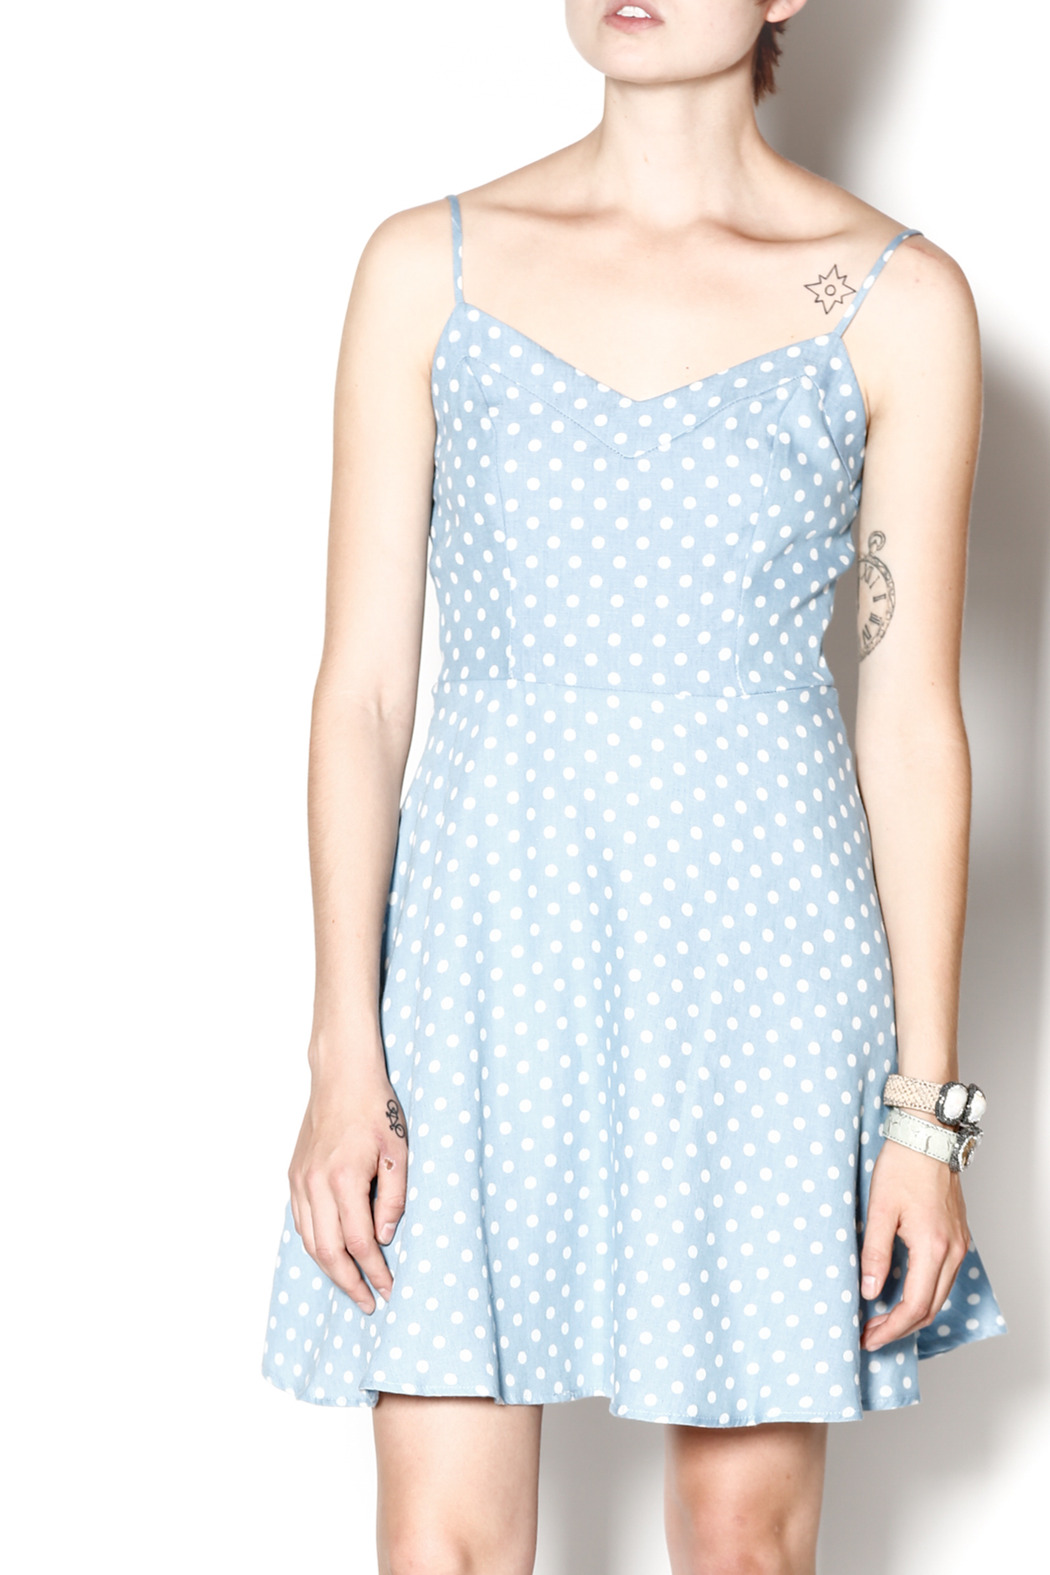 Everly Dotty Chambray Dress - Front Cropped Image